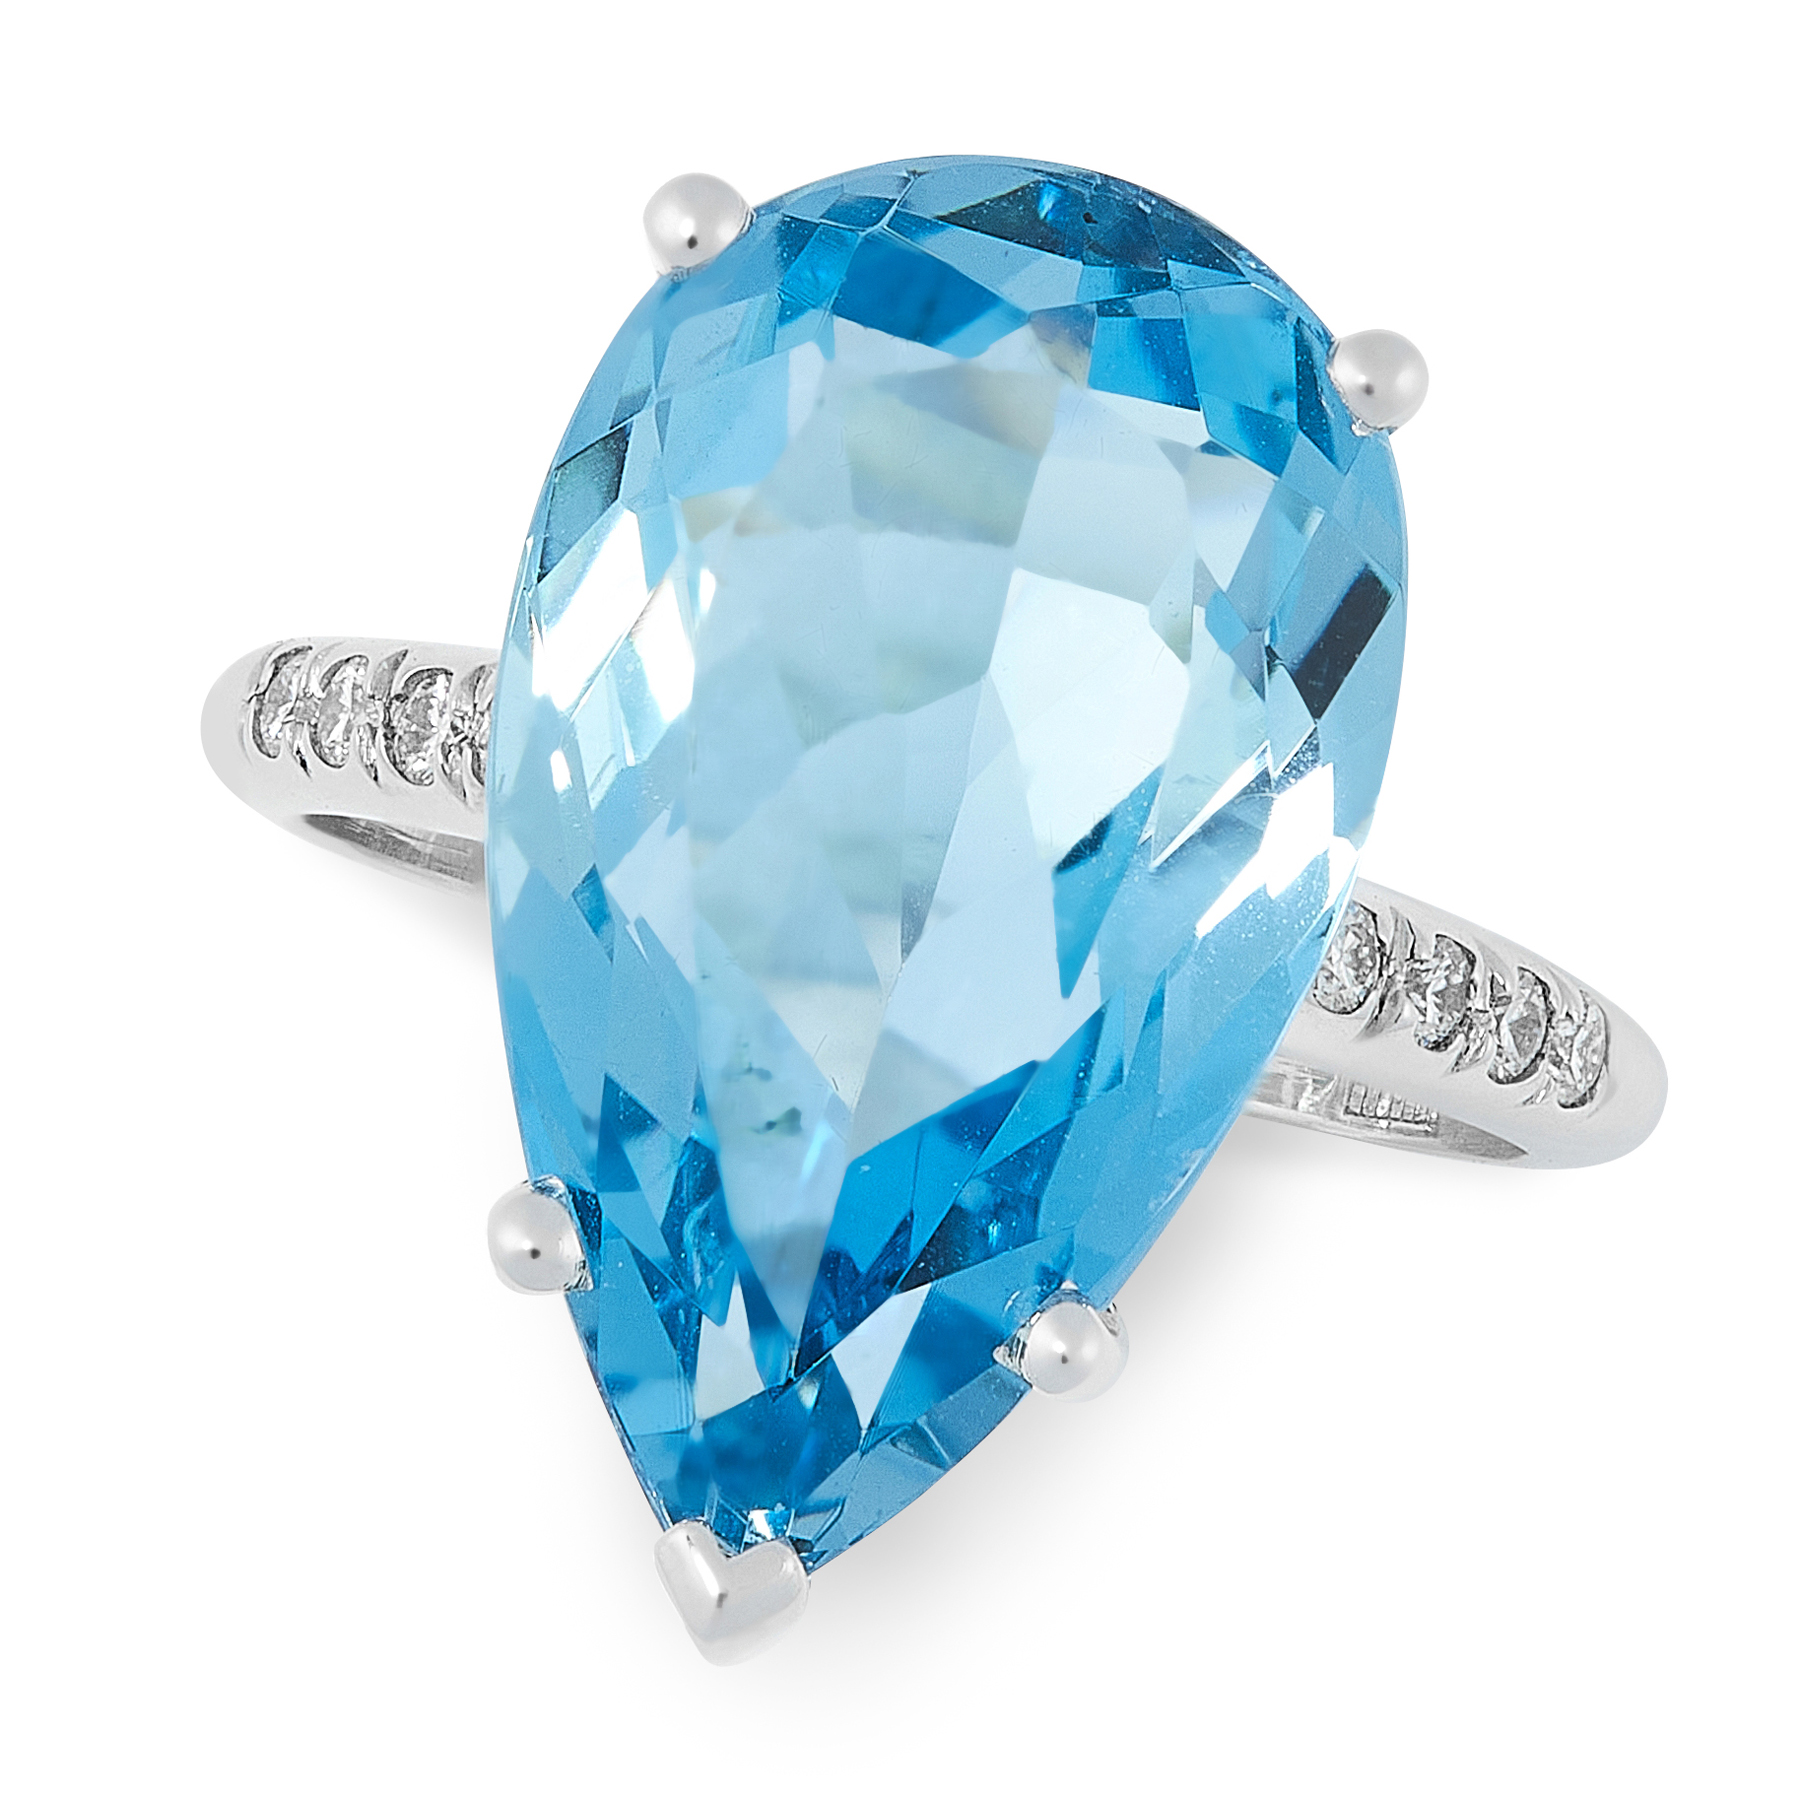 AN AQUAMARINE AND DIAMOND DRESS RING set with a pear cut aquamarine of 10.22 carats, flanked by